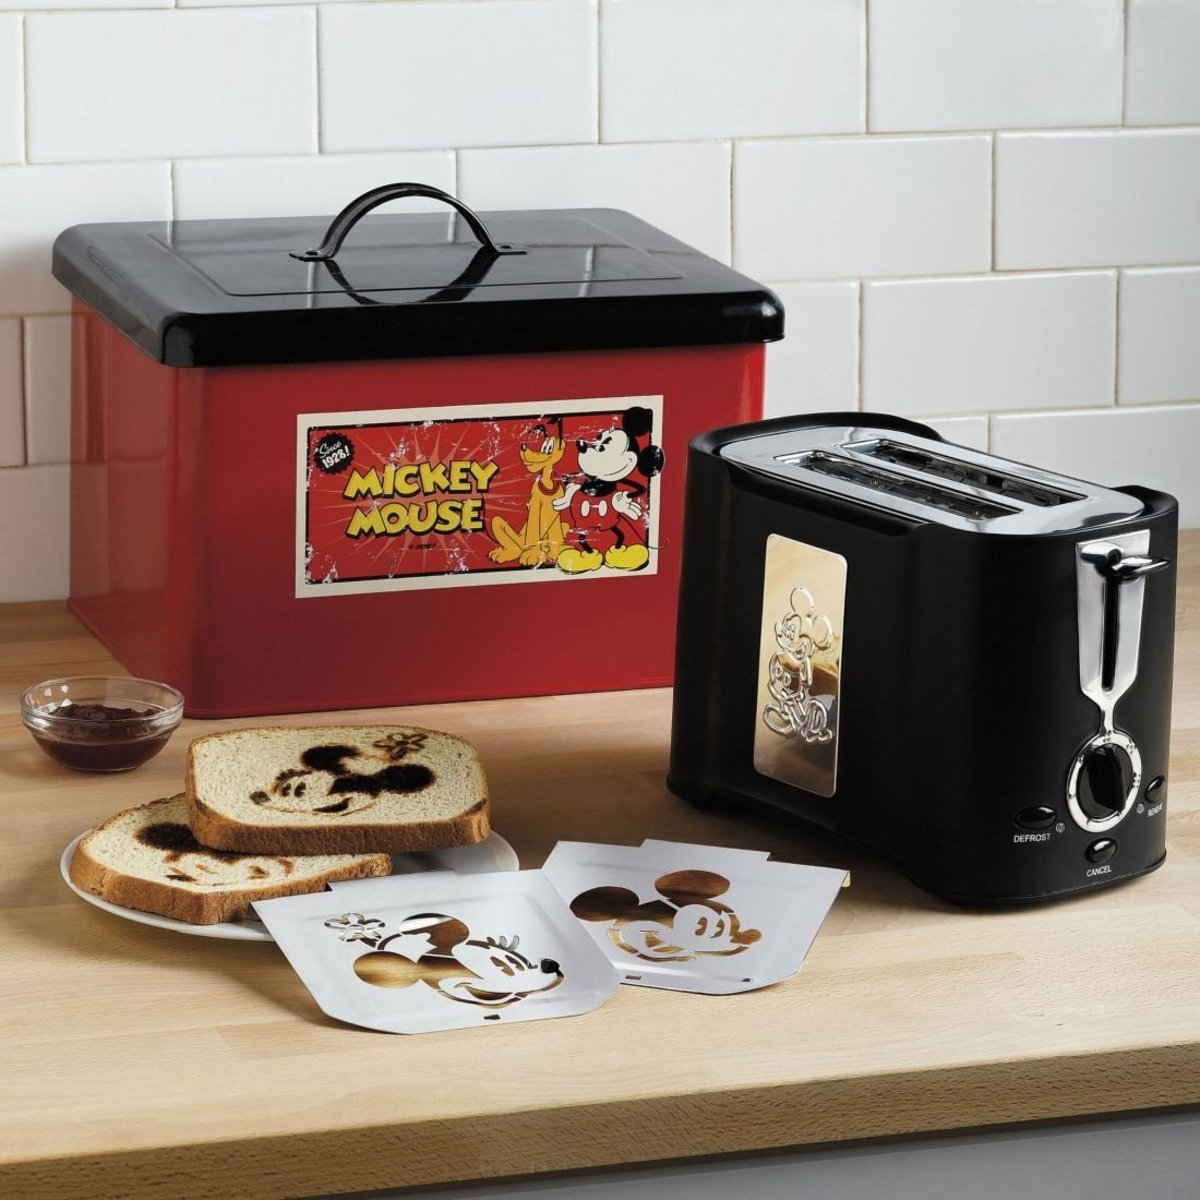 Mickey Mouse toaster and breadbox